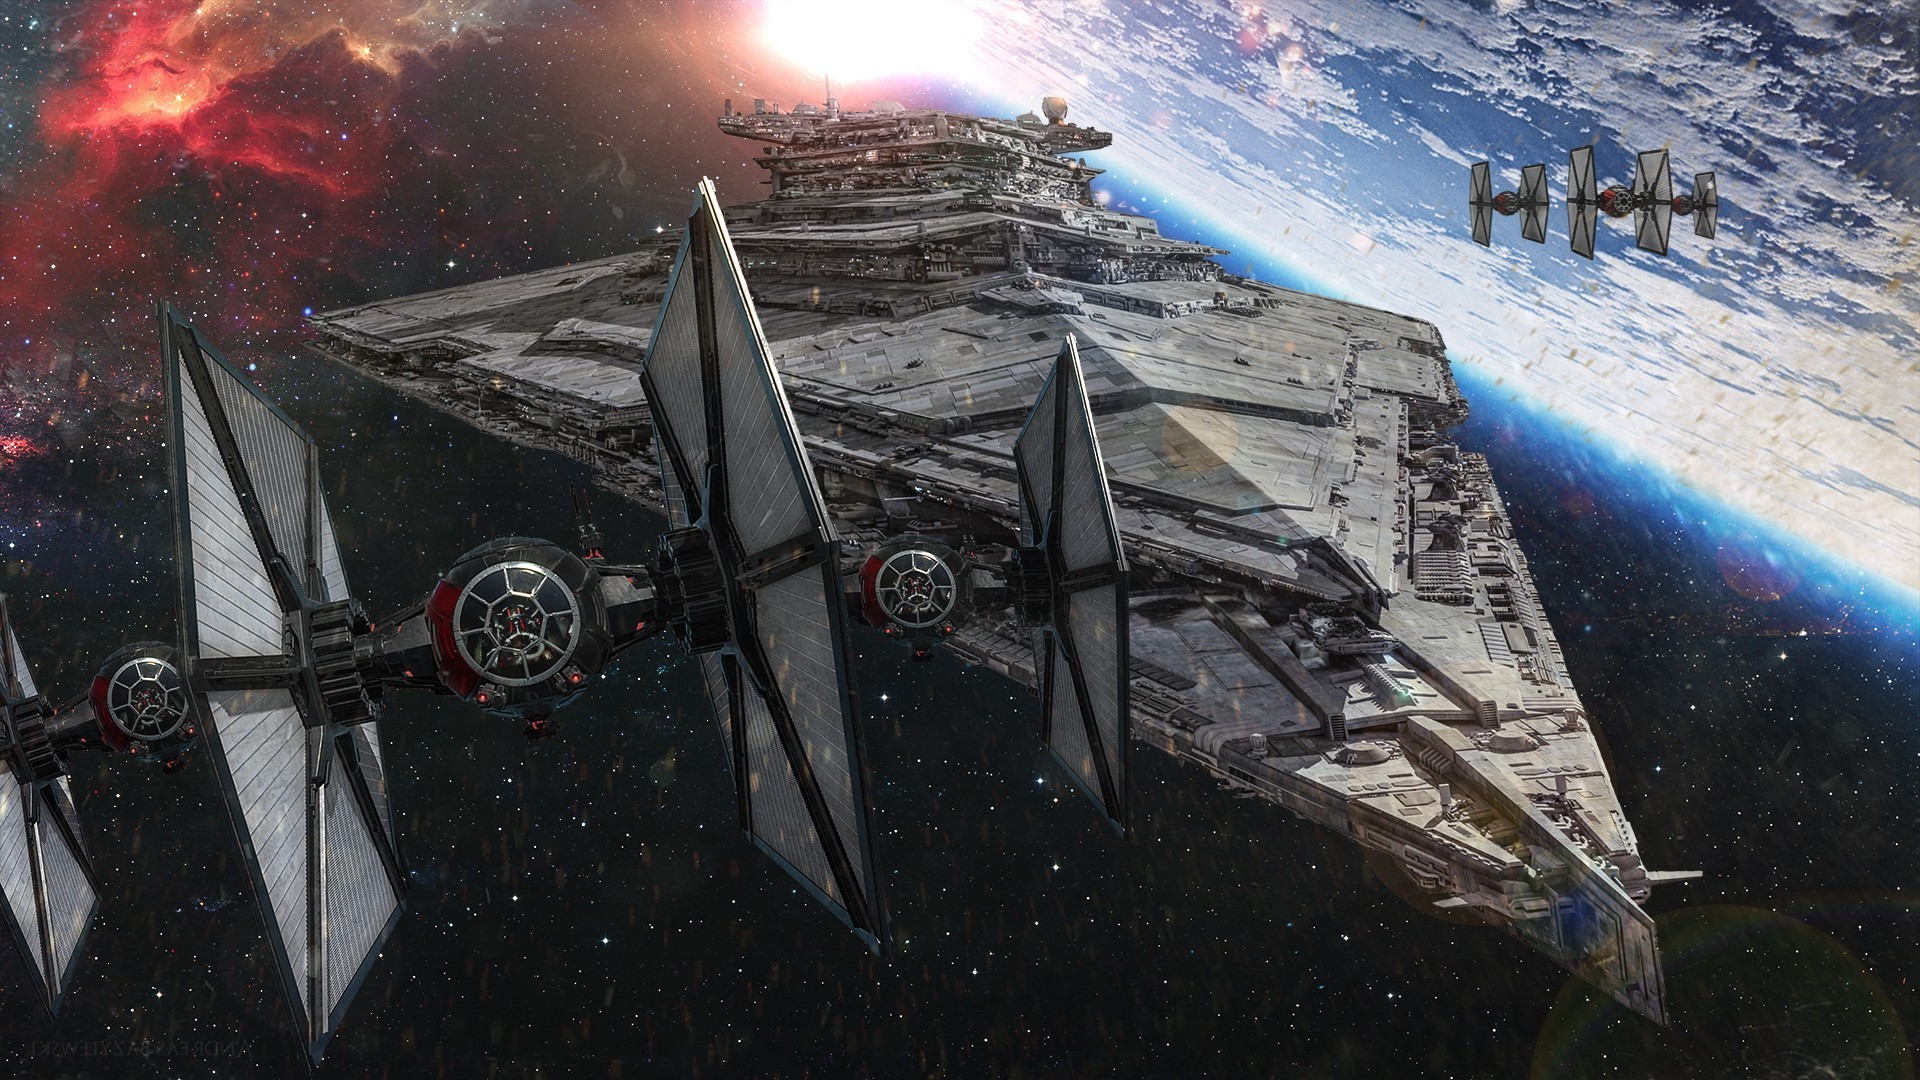 Star Wars: Episode VII The Force Awakens, Star Wars, Movies, Artwork Wallpapers  HD / Desktop and Mobile Backgrounds